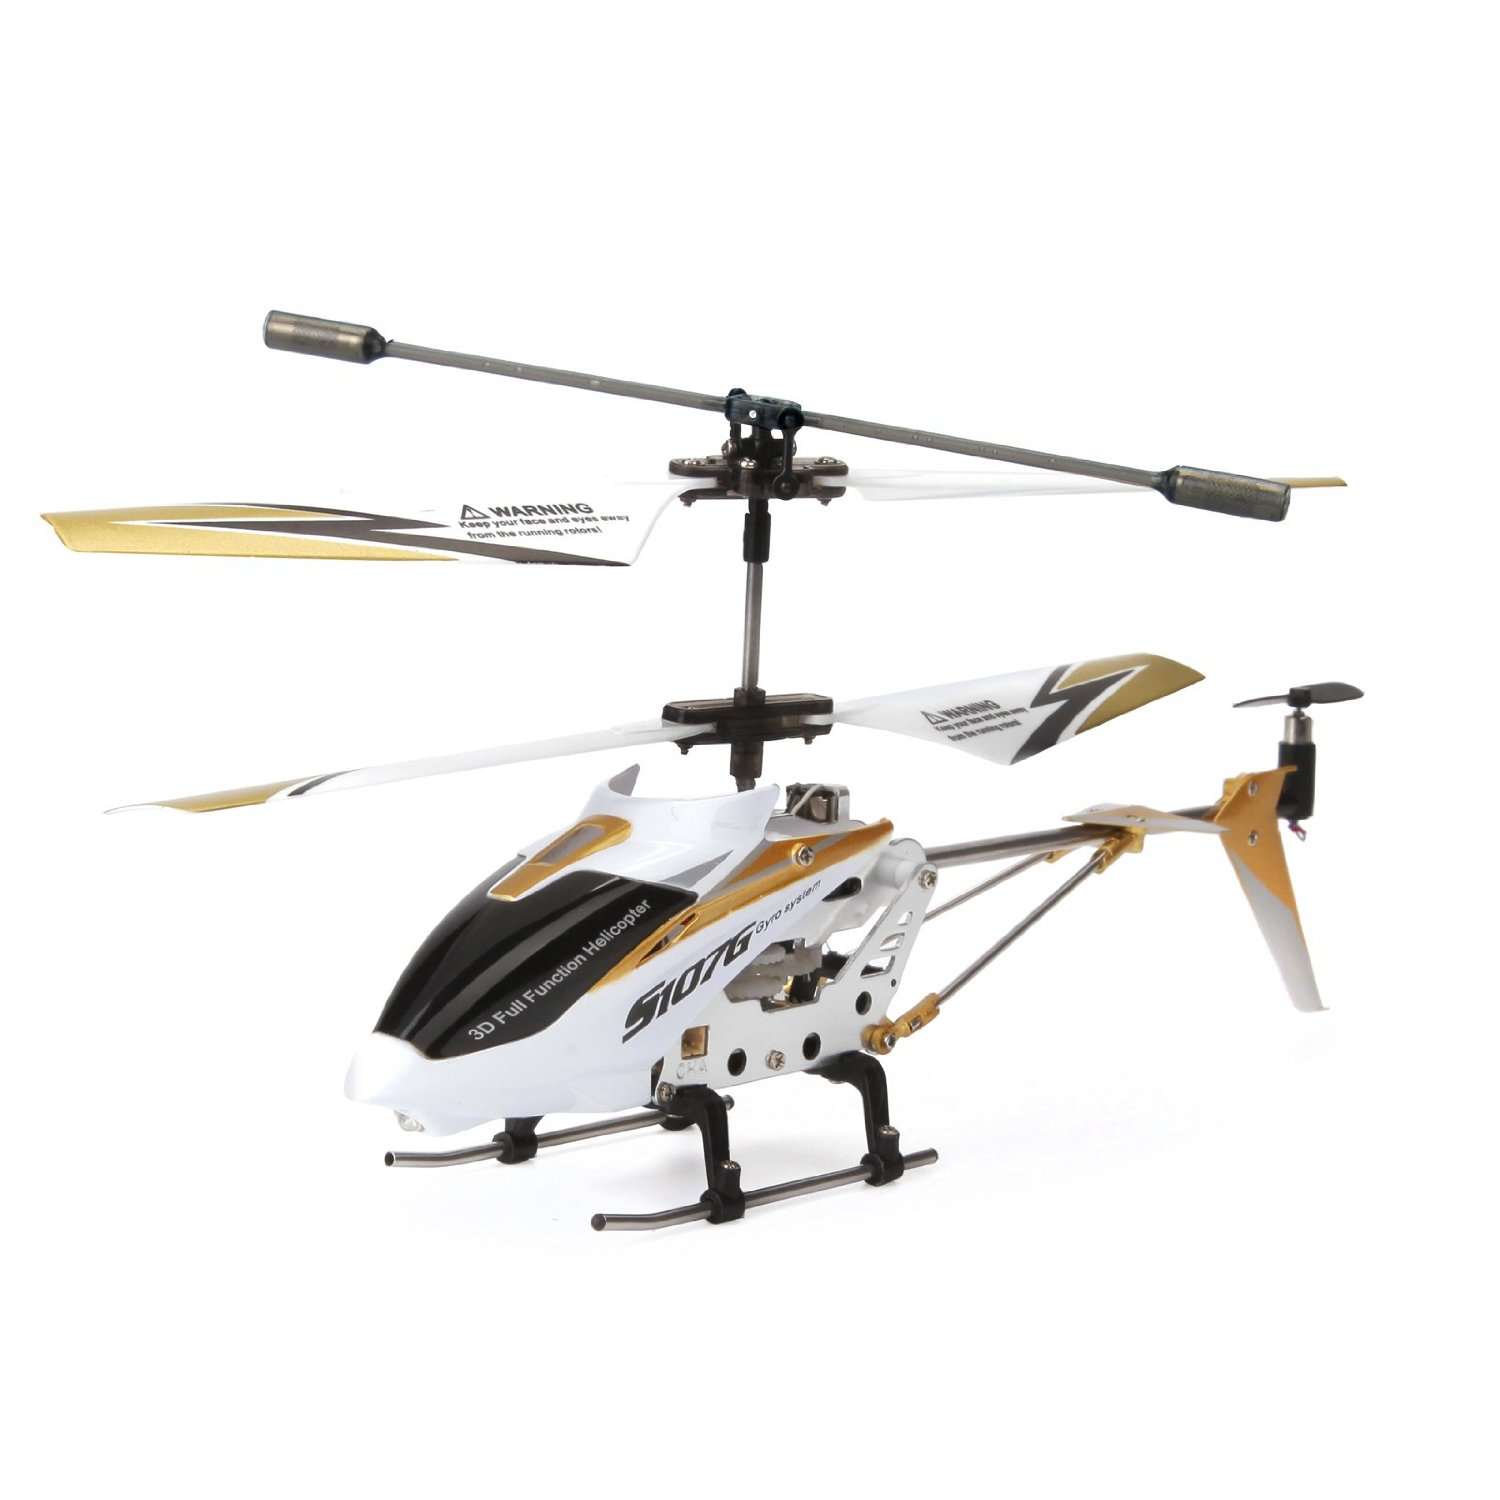 Syma S107/S107G 3.5 Channel R/C Helicopter with Gyro ...